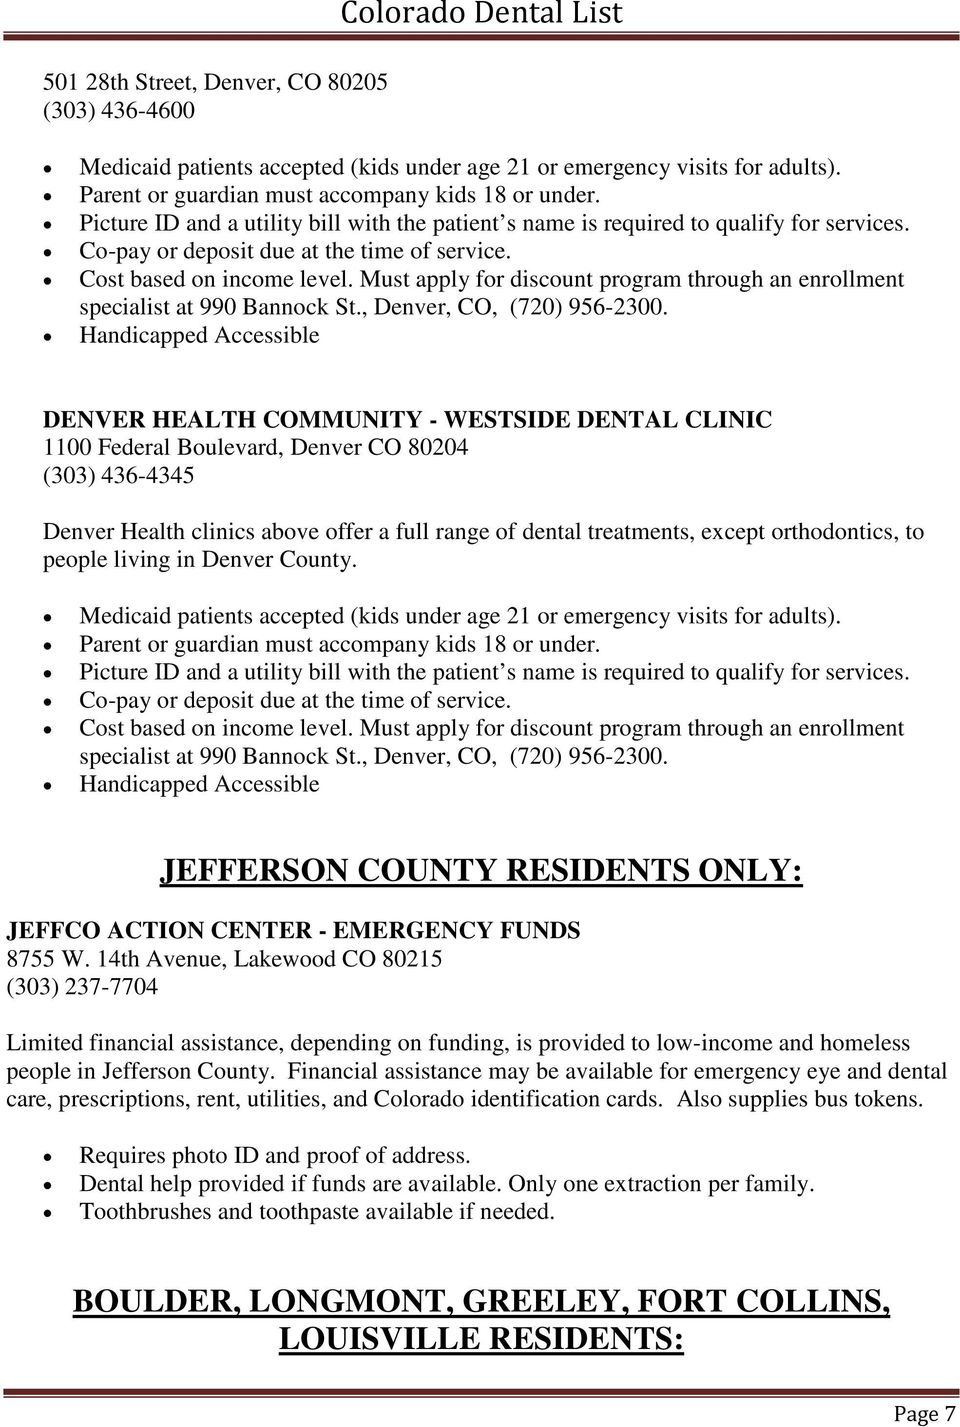 Colorado Low Cost/Medicaid Dentists with Accessibility Options - PDF